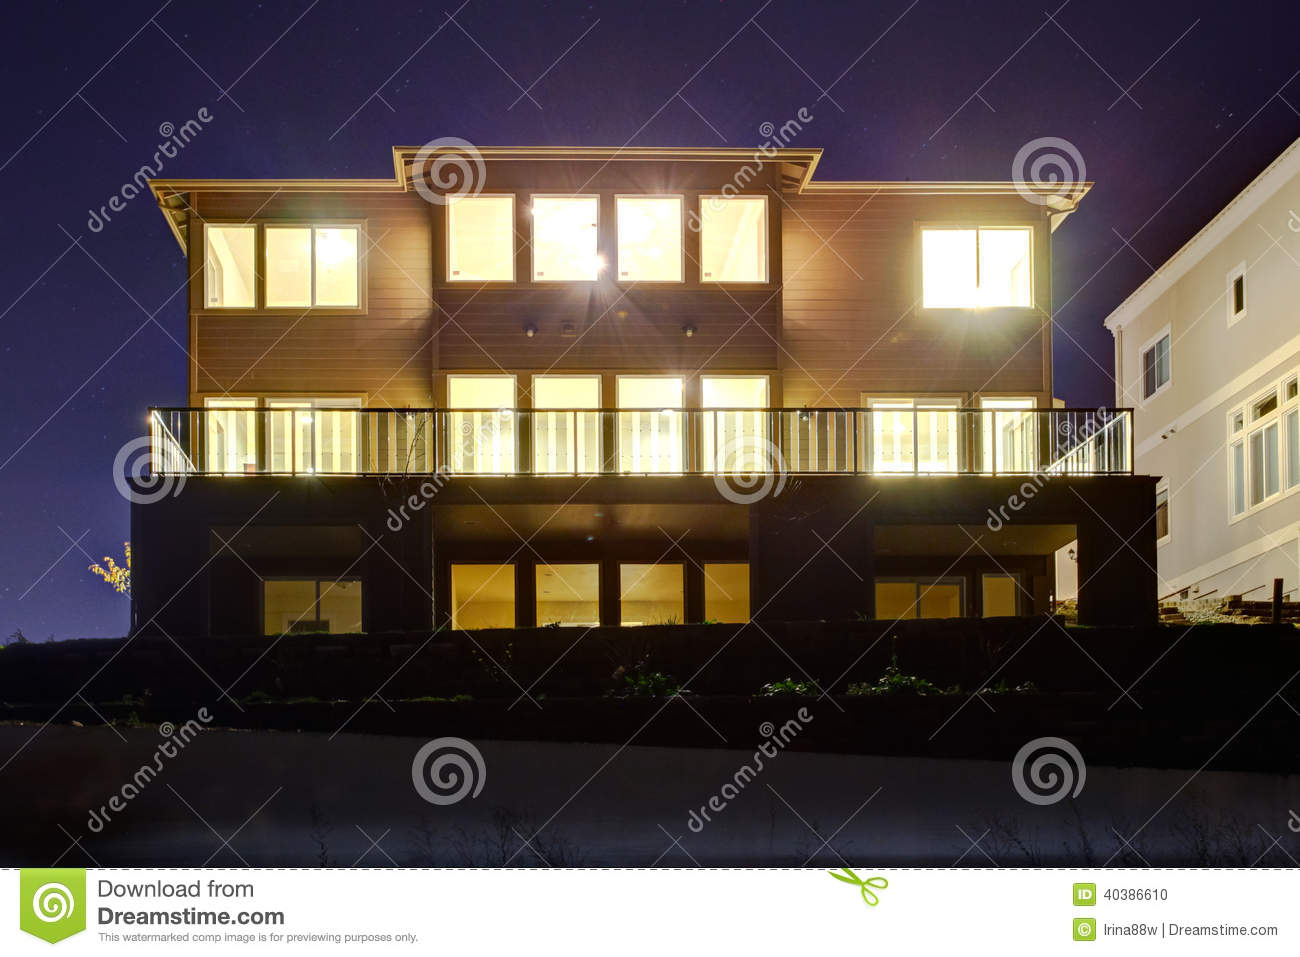 House With Lights On Night View Stock Photo Image 40386610